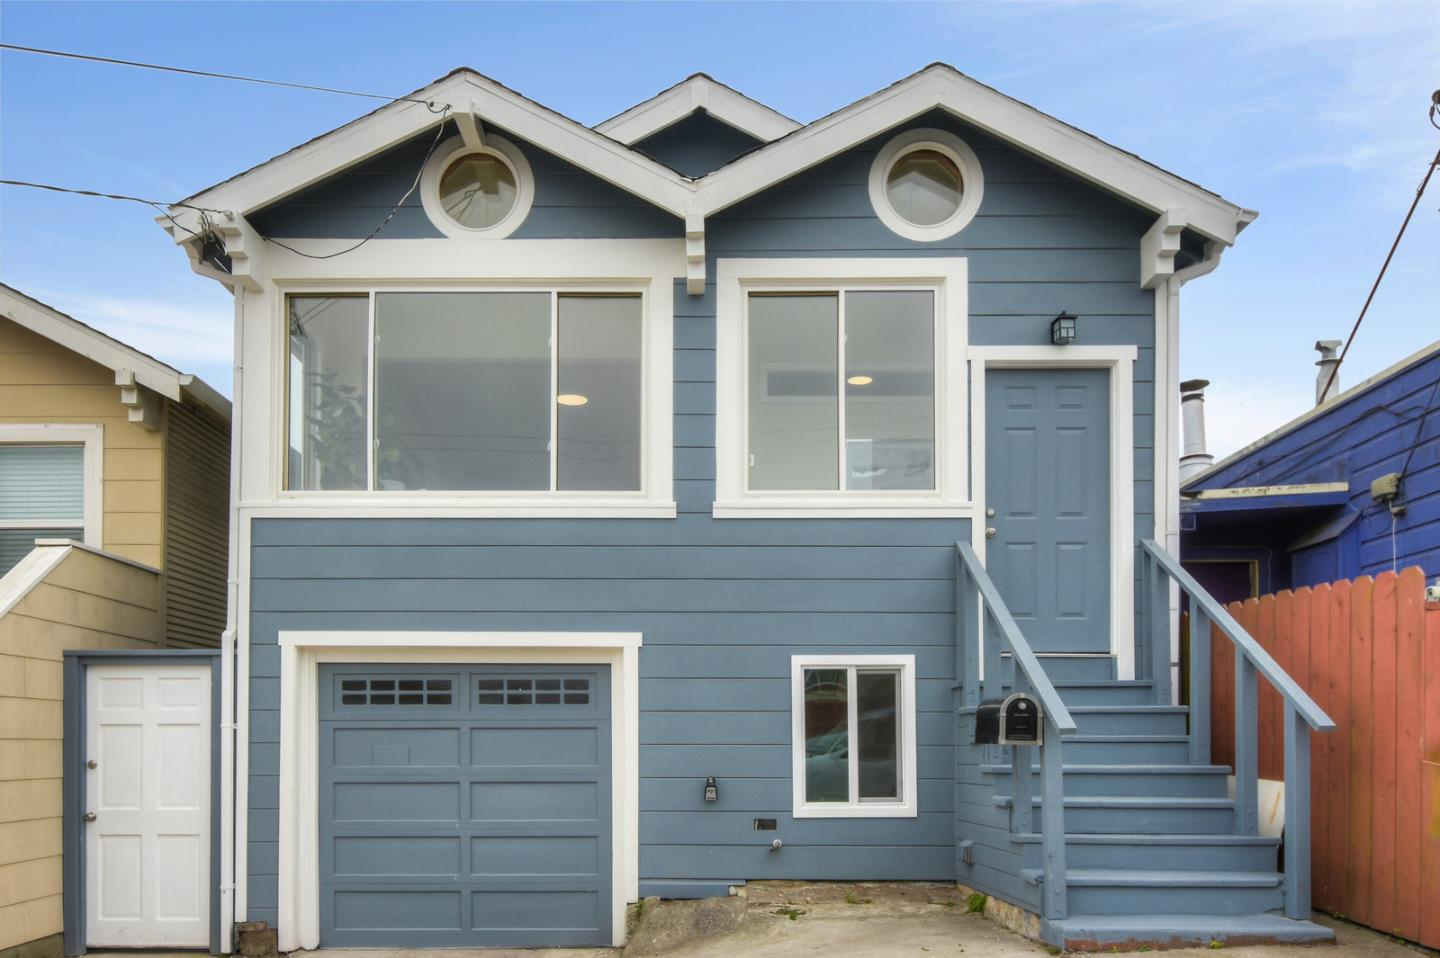 Newly renovated home with a total of 4 bedroom and 4 bath ( upper 3 bedroom and 2 bath with bonus sun room with a view, lower  family room 1 bedroom and 2 baths with bonus room ). Easy access to all transportation and exits. Walking distance to Bart's Station, near to the school , grocery store and restaurants.